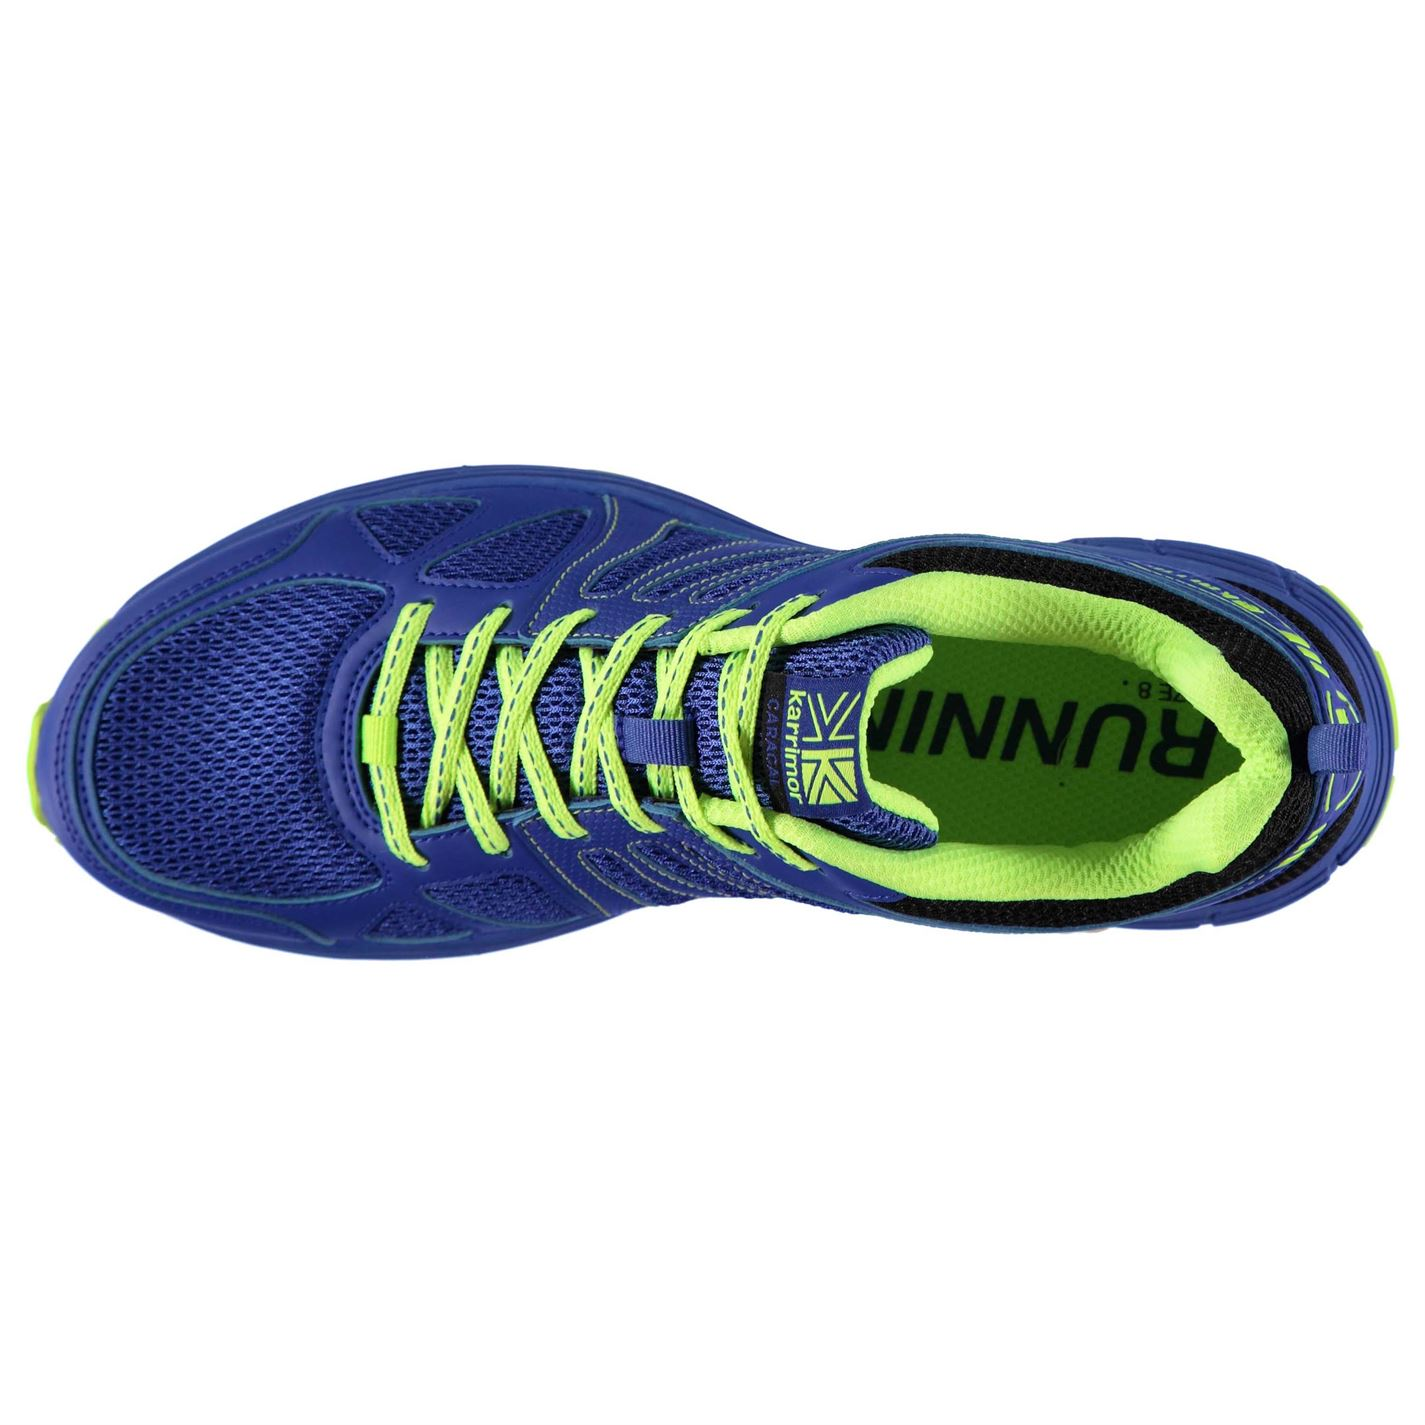 Karrimor-Men-Caracal-Trail-Running-Shoes-Trainers-Lace-Up-Breathable-Mesh-Panels thumbnail 16